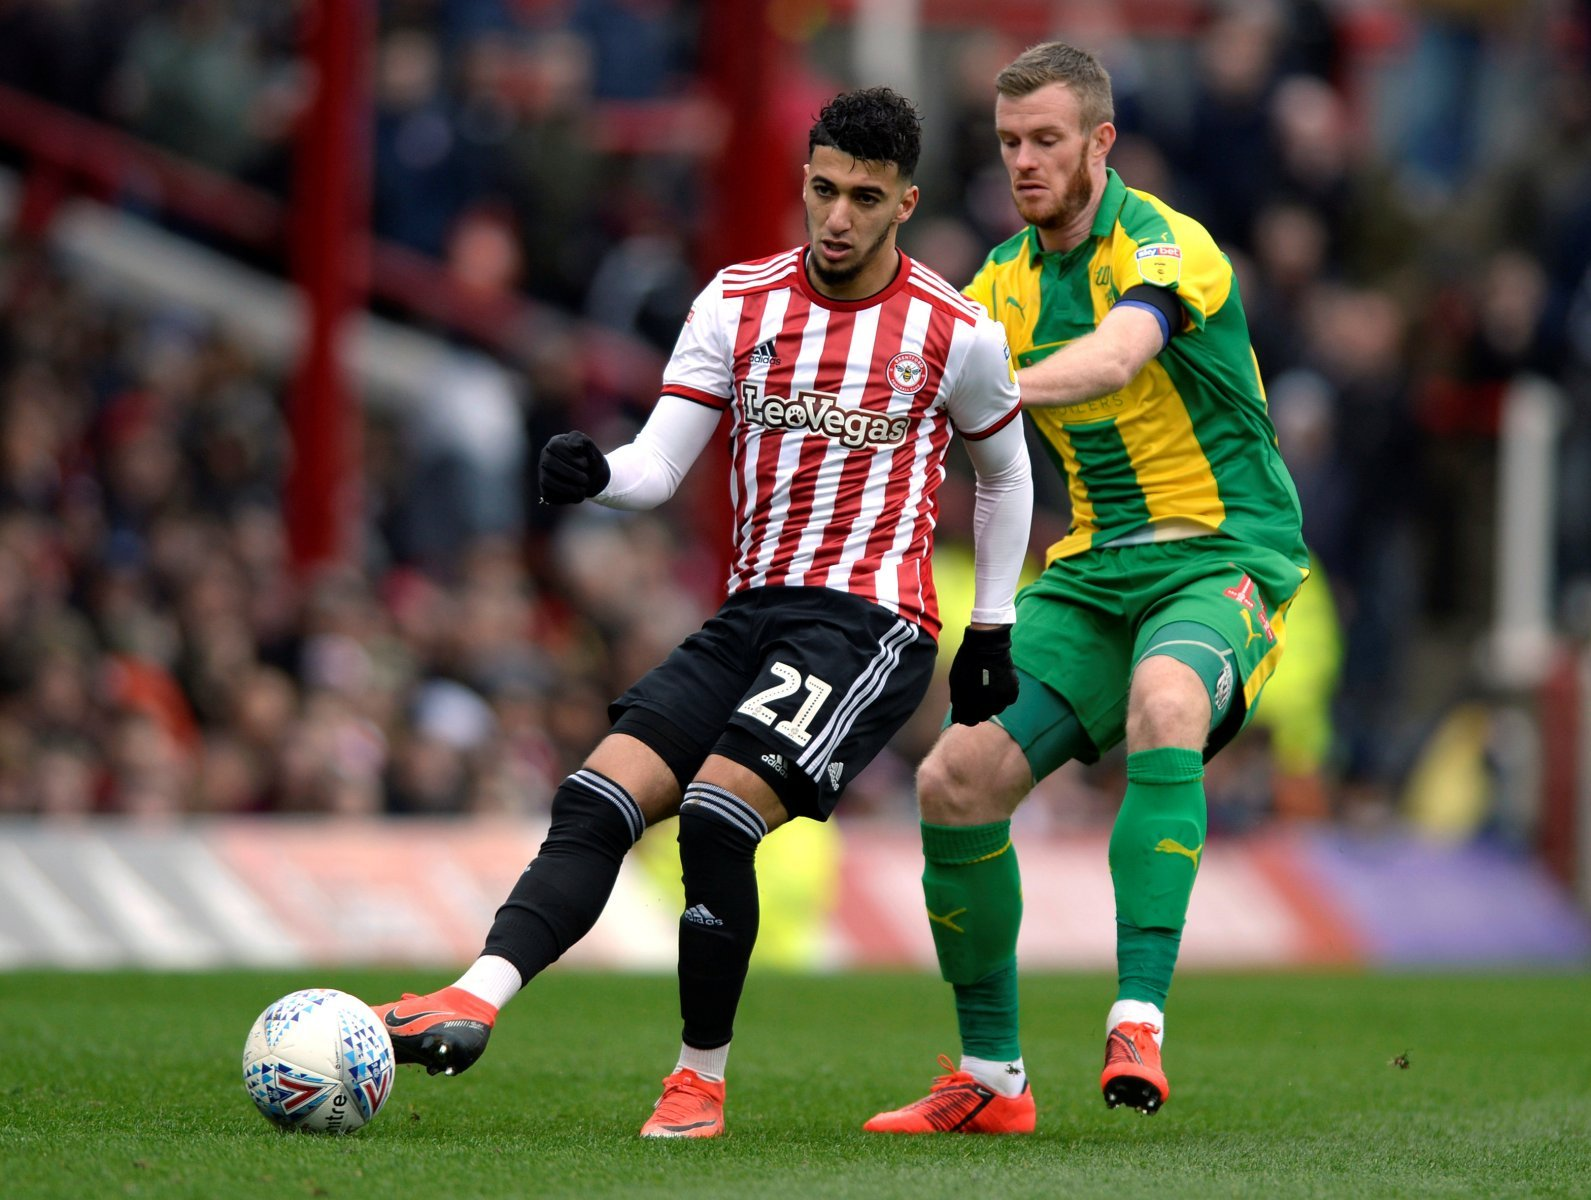 Newcastle: Toon considered move for Brentford forward Benrahma in summer